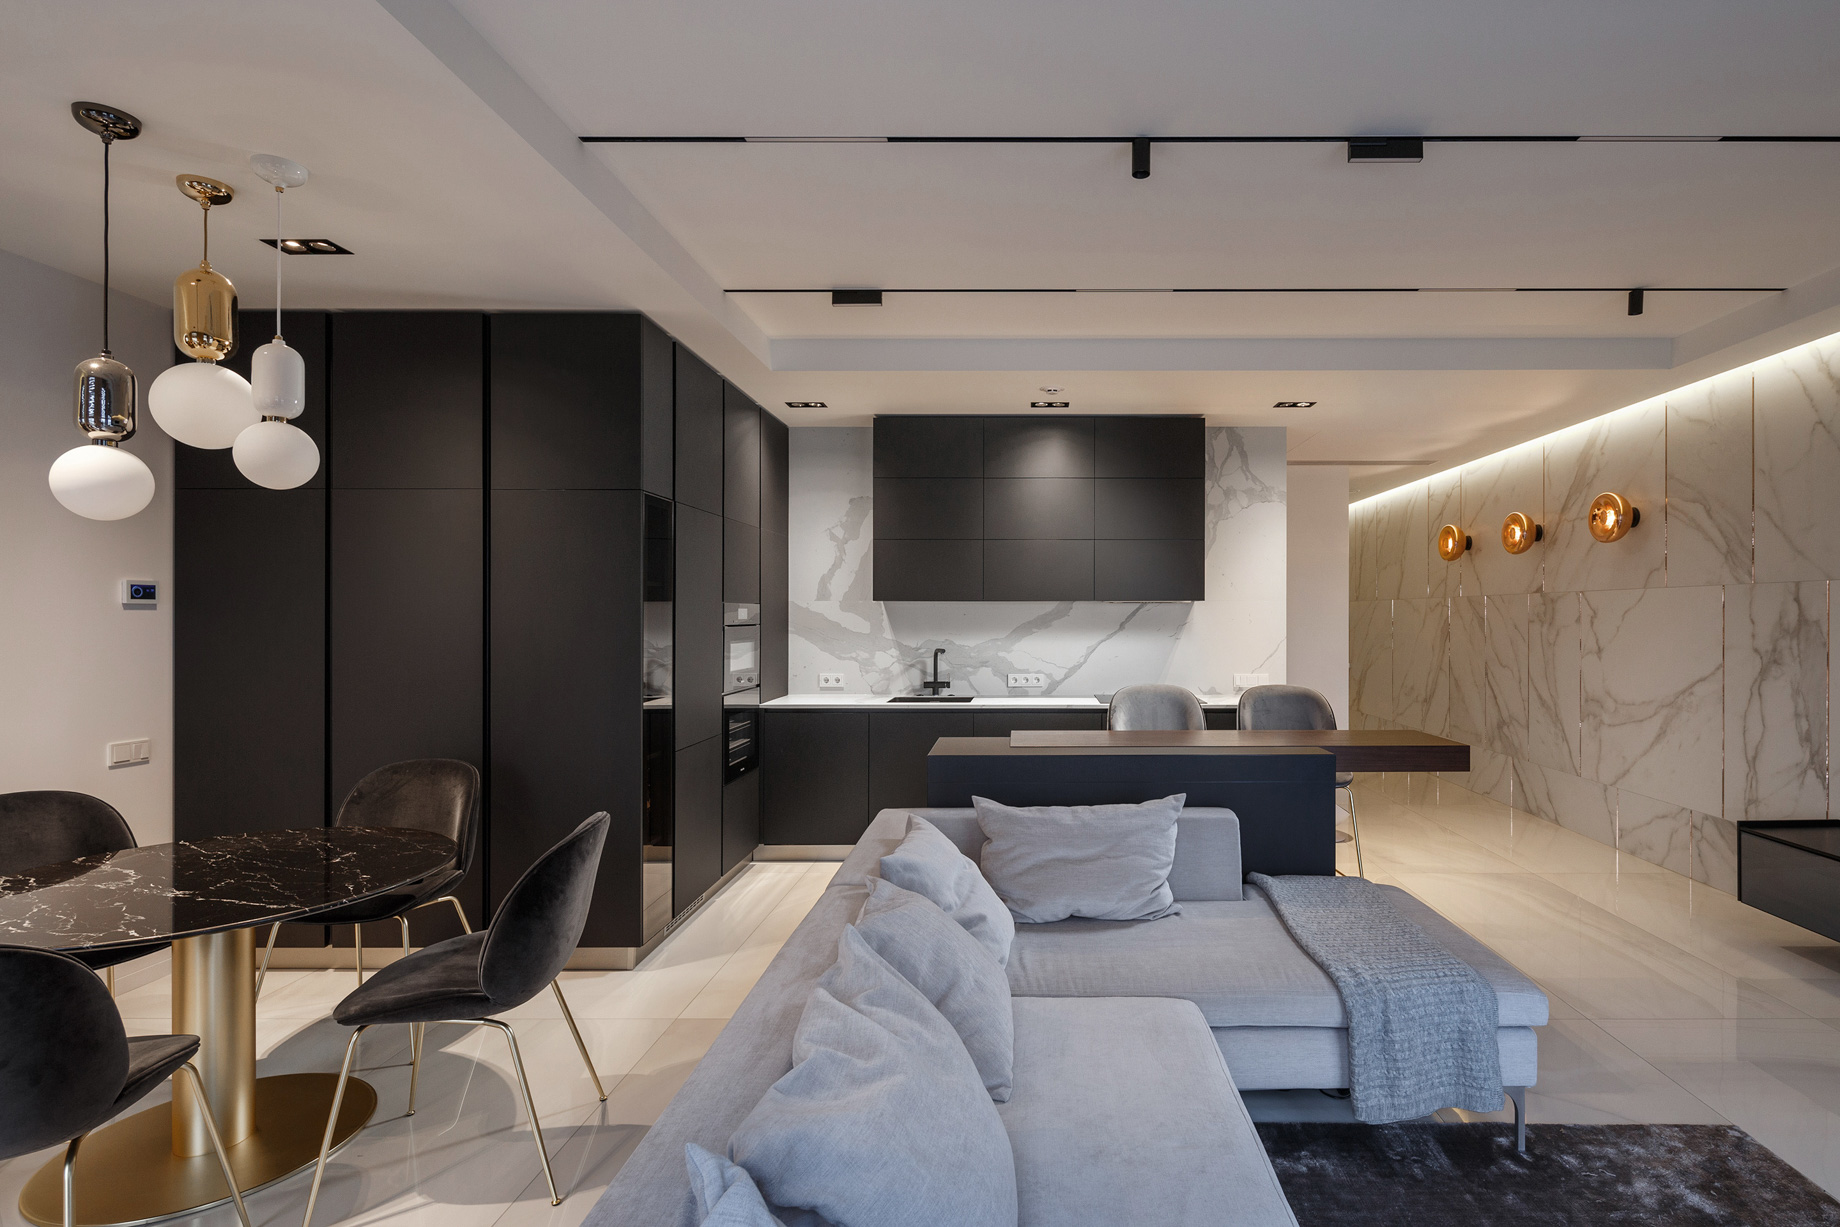 SHINE Luxury Apartment Interior Design Dnipro, Ukraine – Svoya Studio